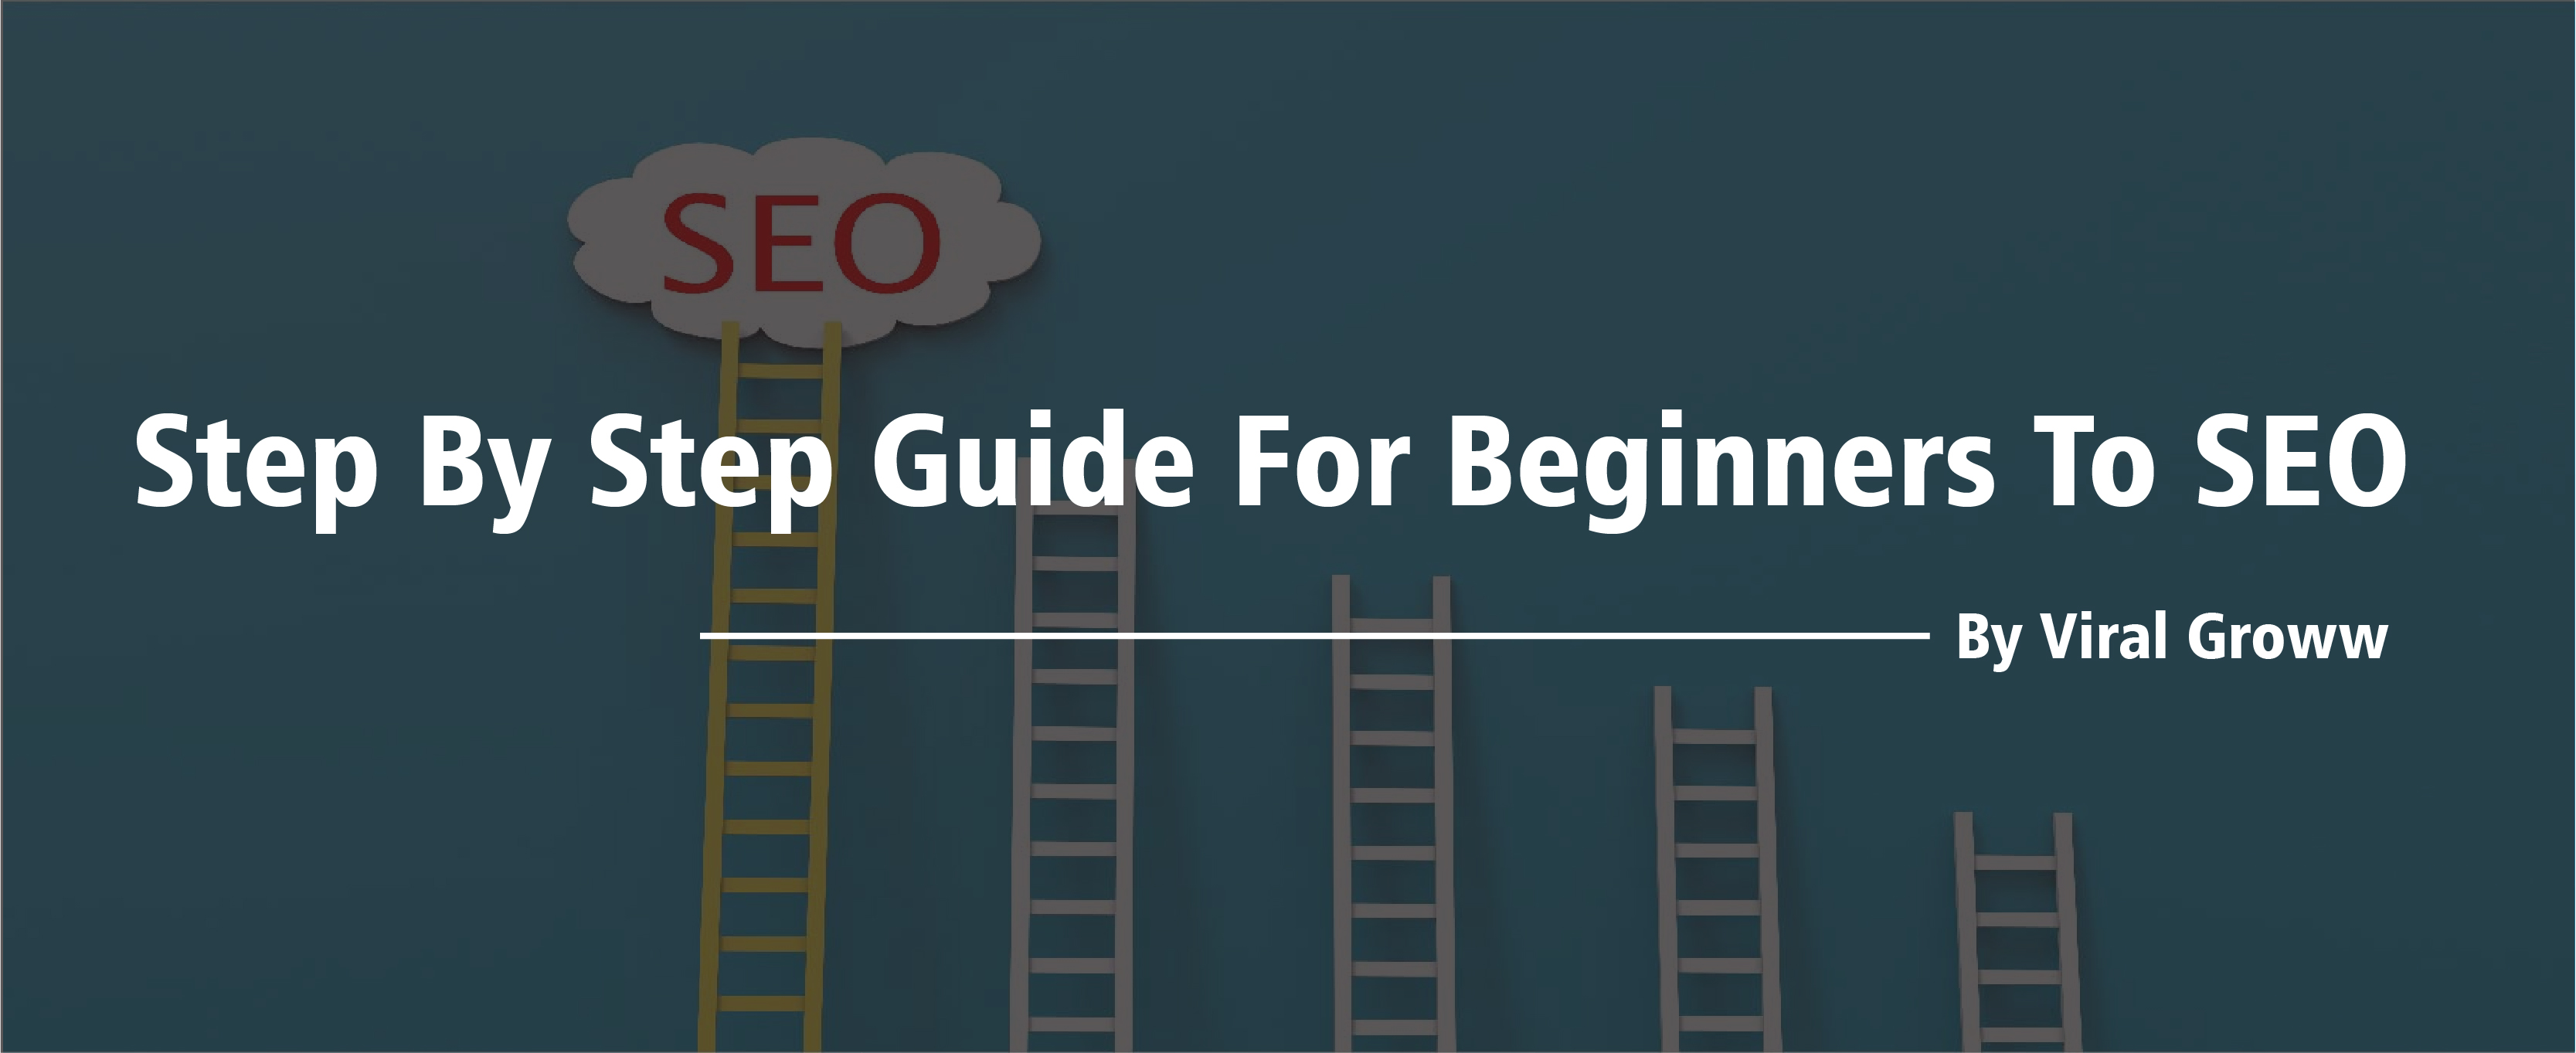 Step by Step guide for beginners to SEO